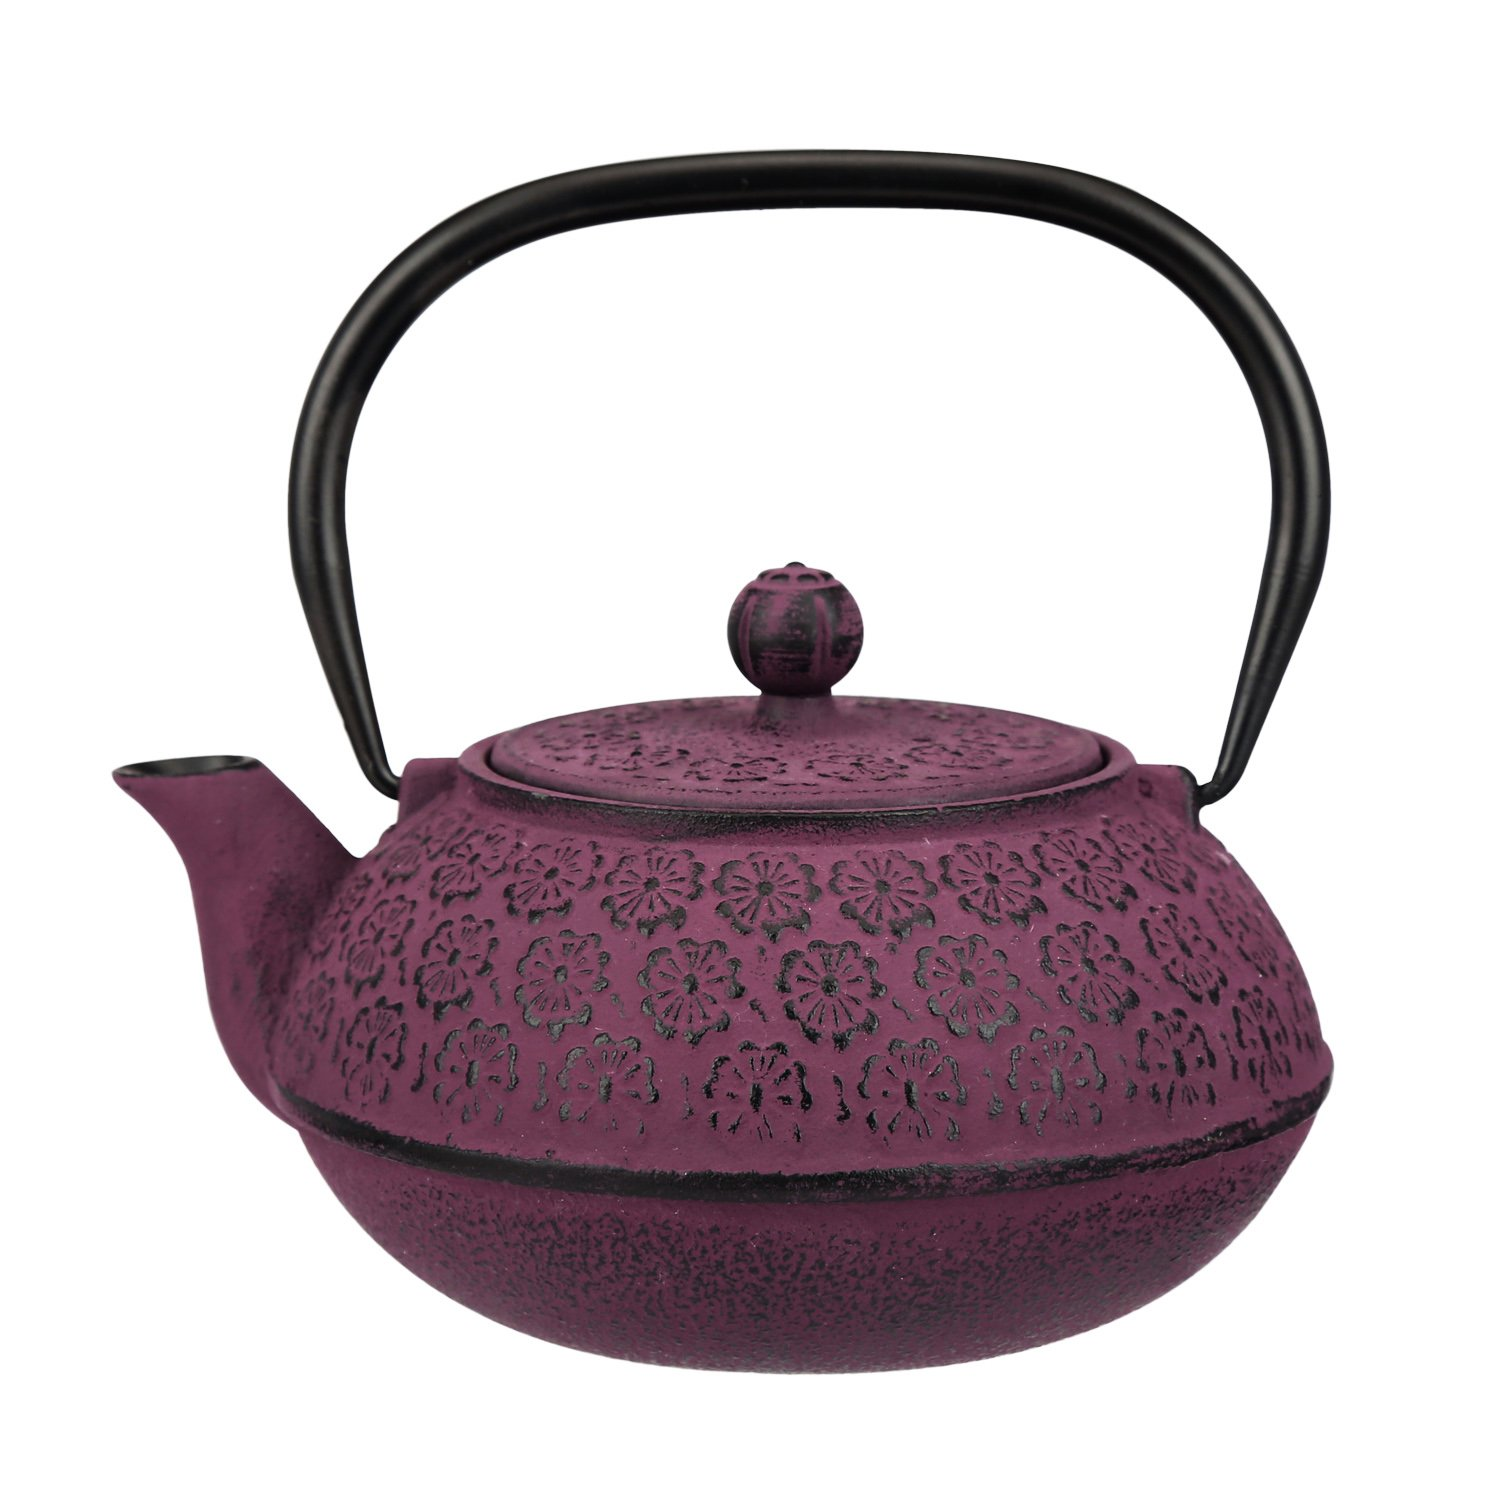 30 oz Cast Iron Teapot Enamel Lining W/Metal Infuser,Purple LTD